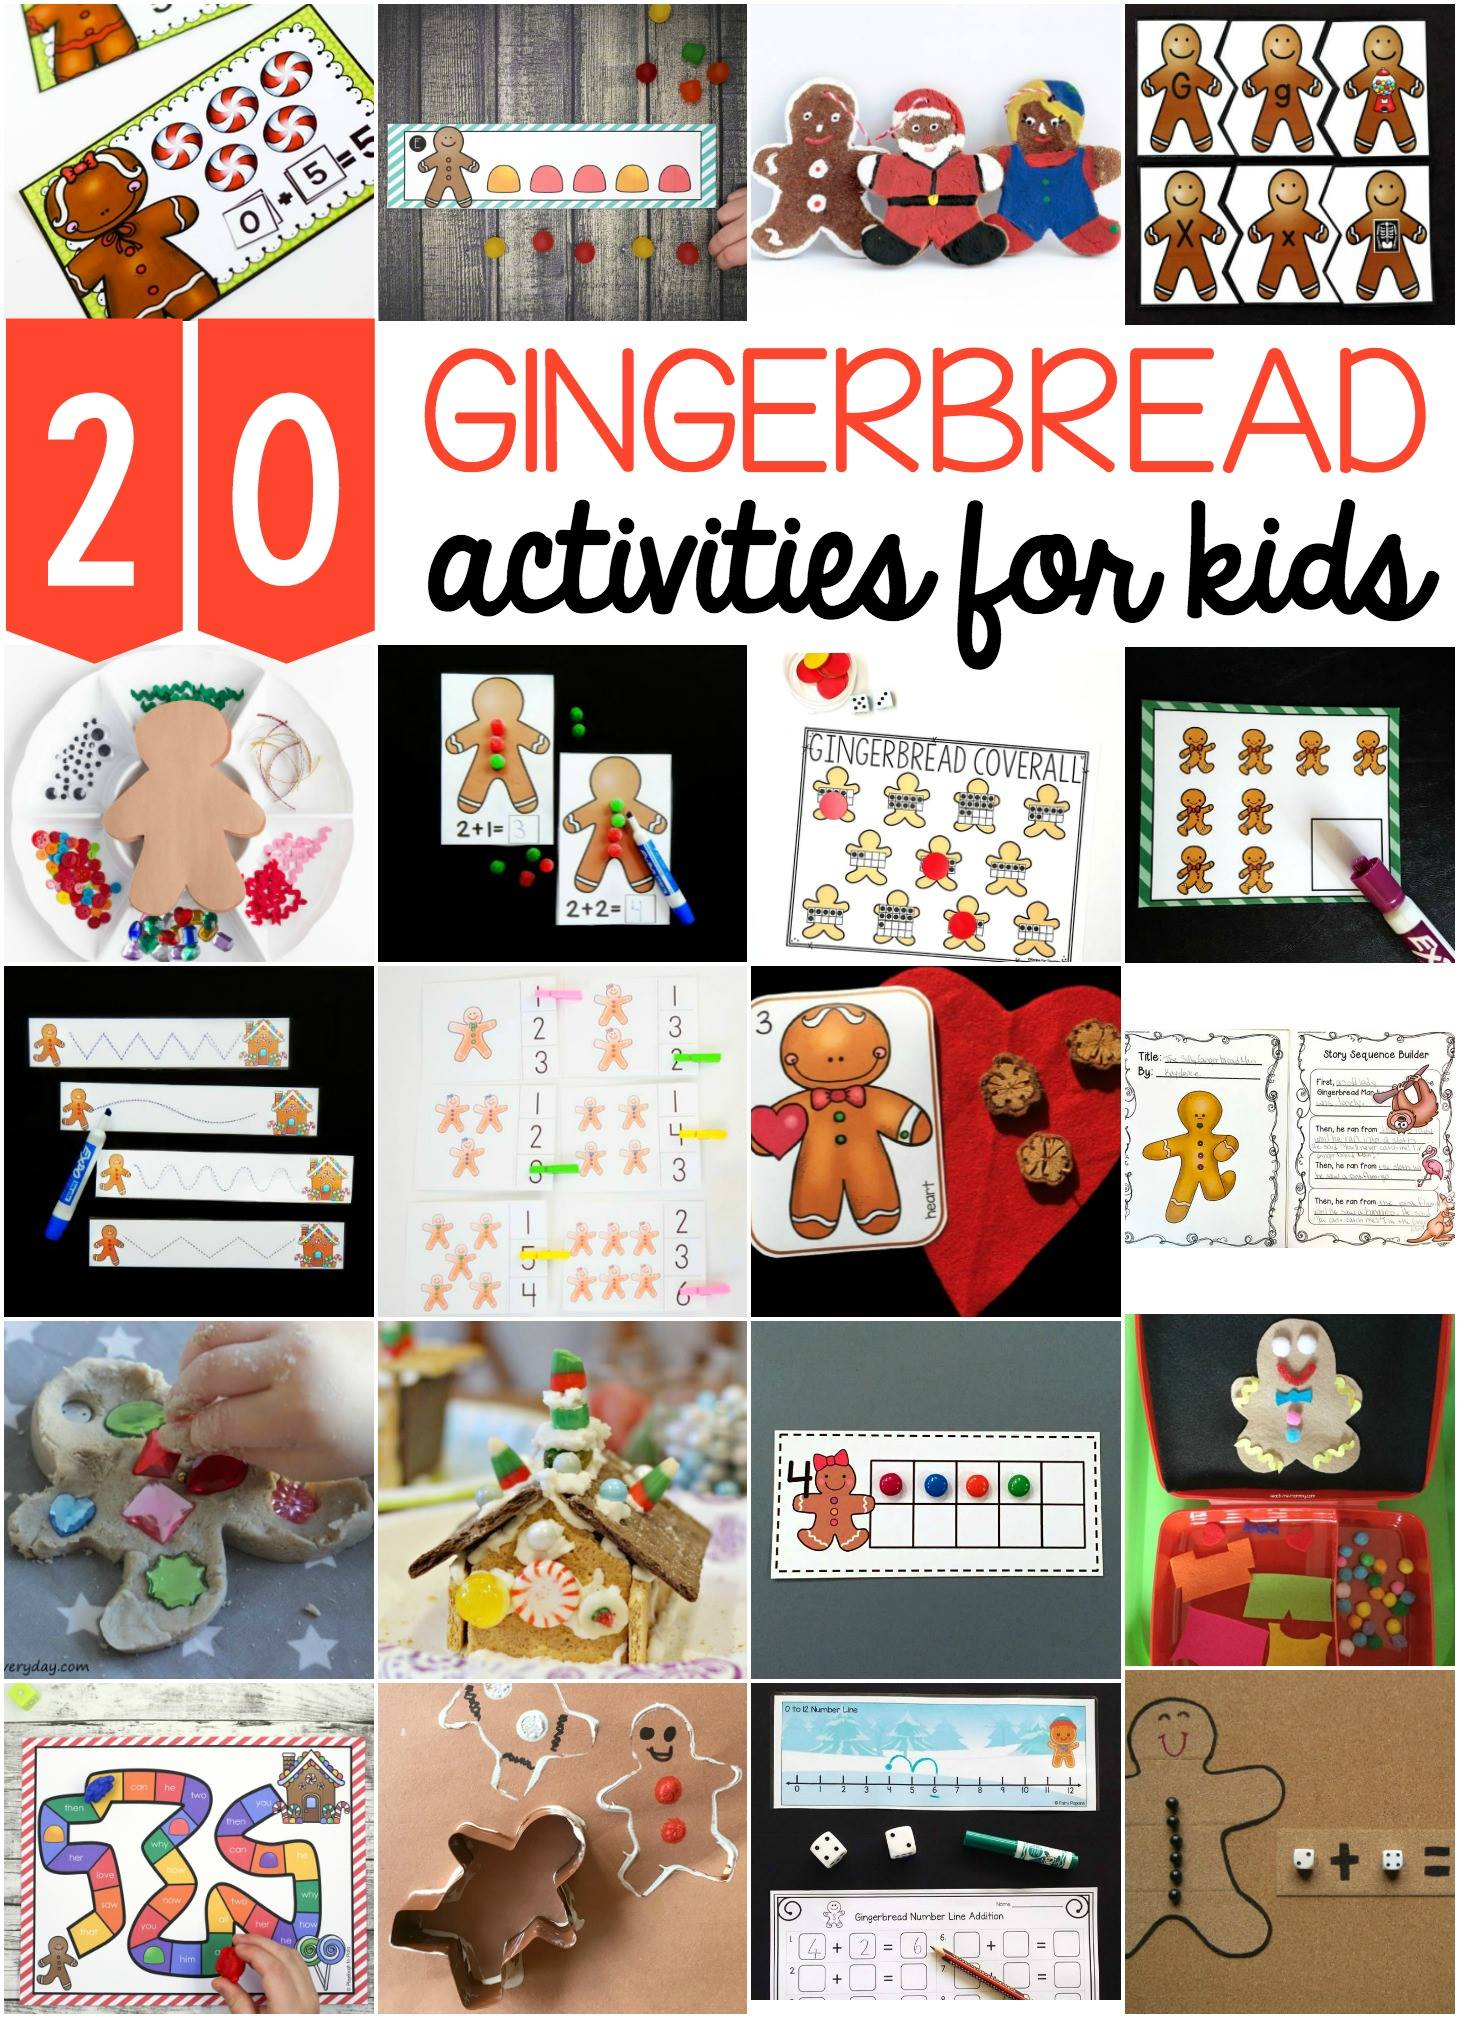 Awesome gingerbread activities for kids!